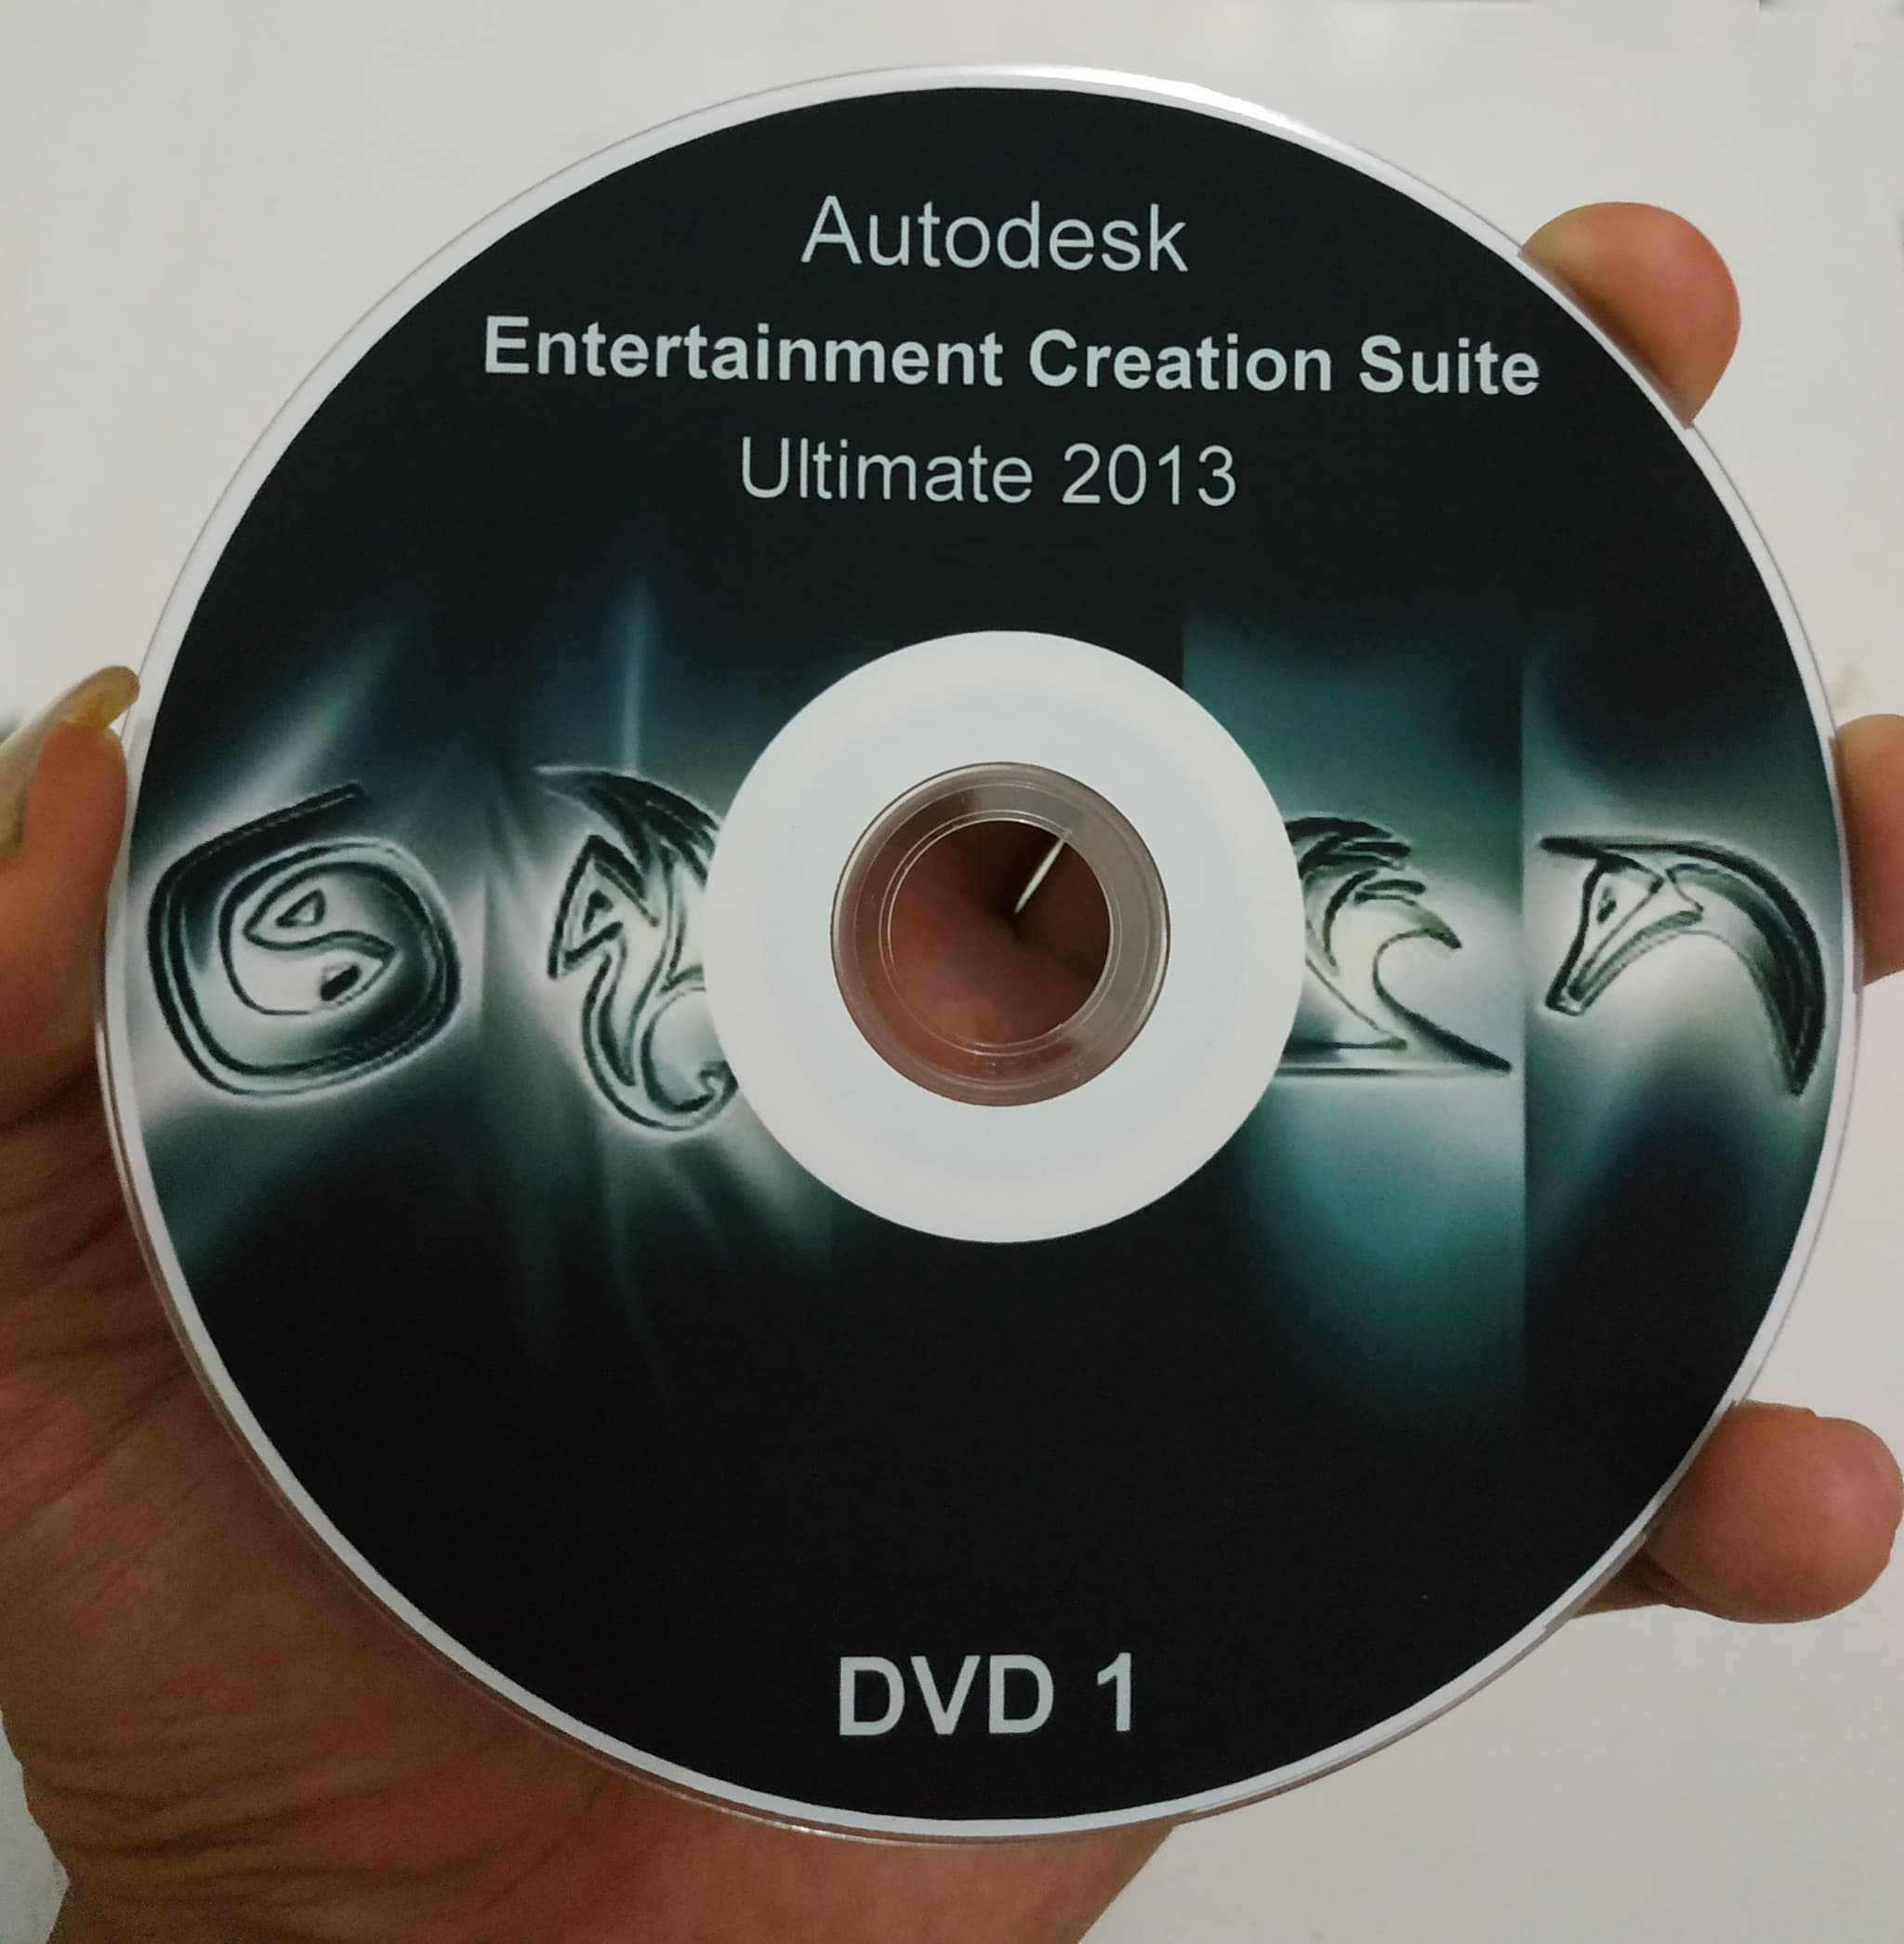 Autodesk Entertainment CSU 2013 3ds Max,Maya,Mudbox dll